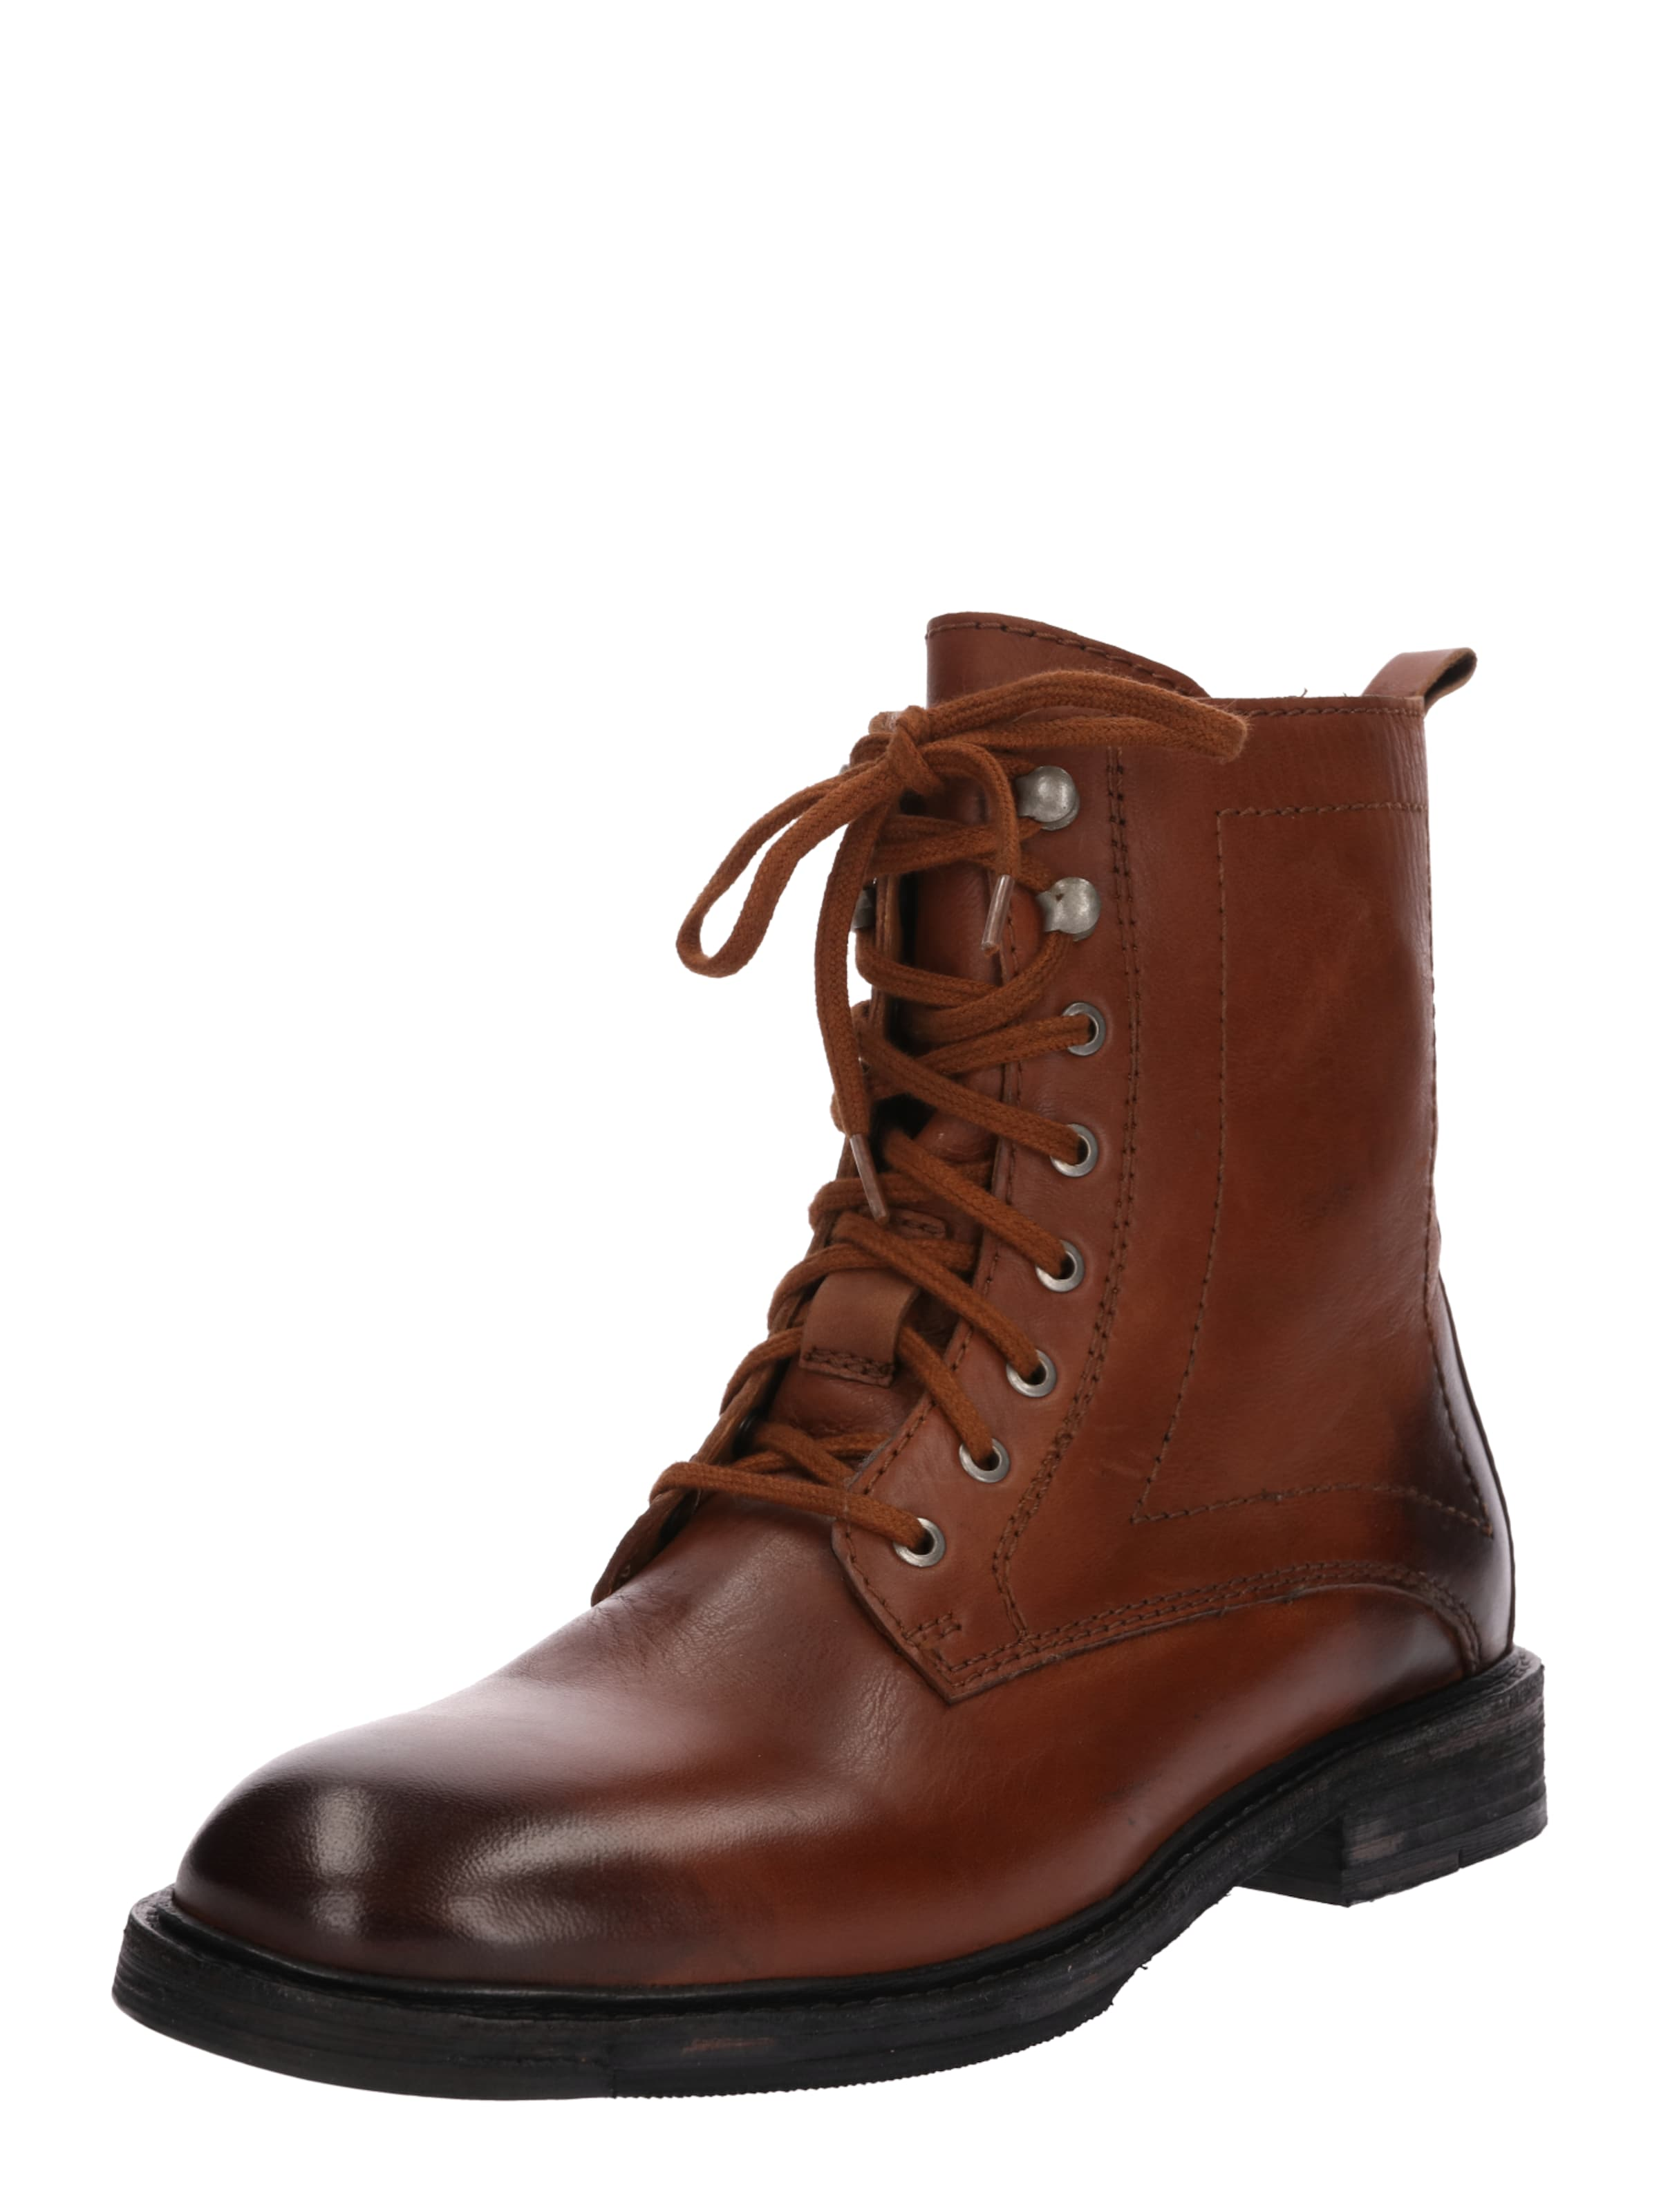 En Tigha Lacets 'matthew' Châtaigne Bottines Marron À PZuOkiX